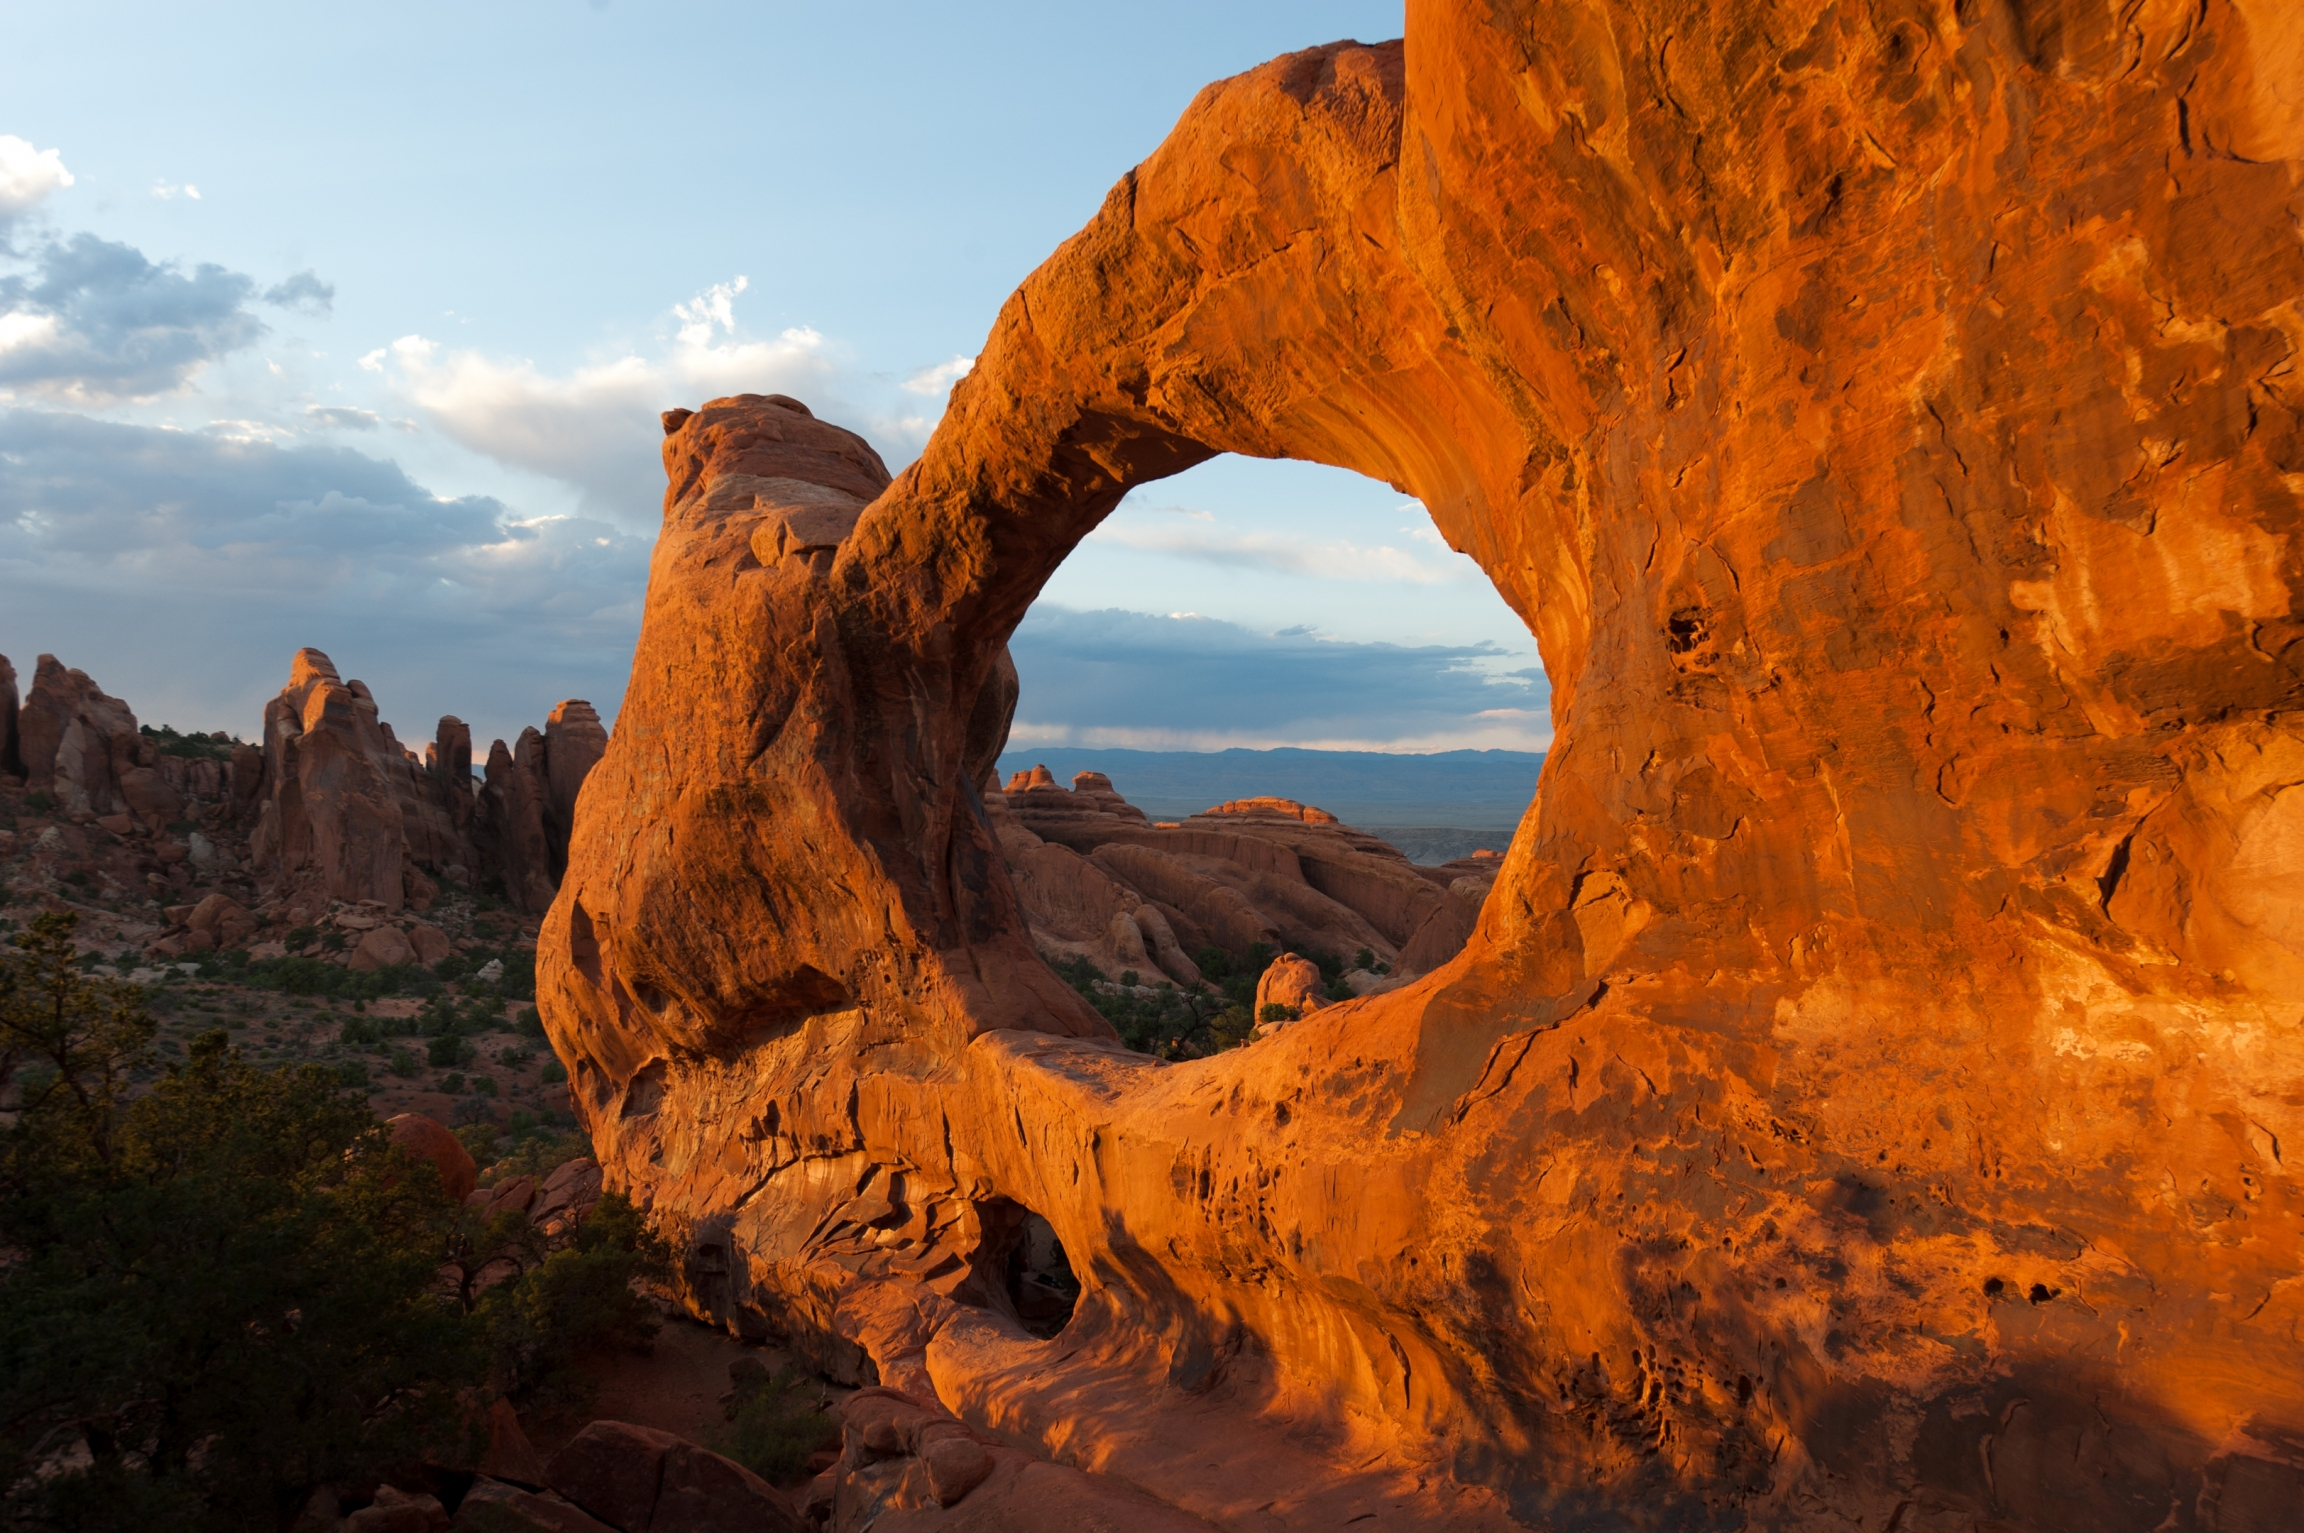 Brown arches naturally formed from stone in Arches National Park